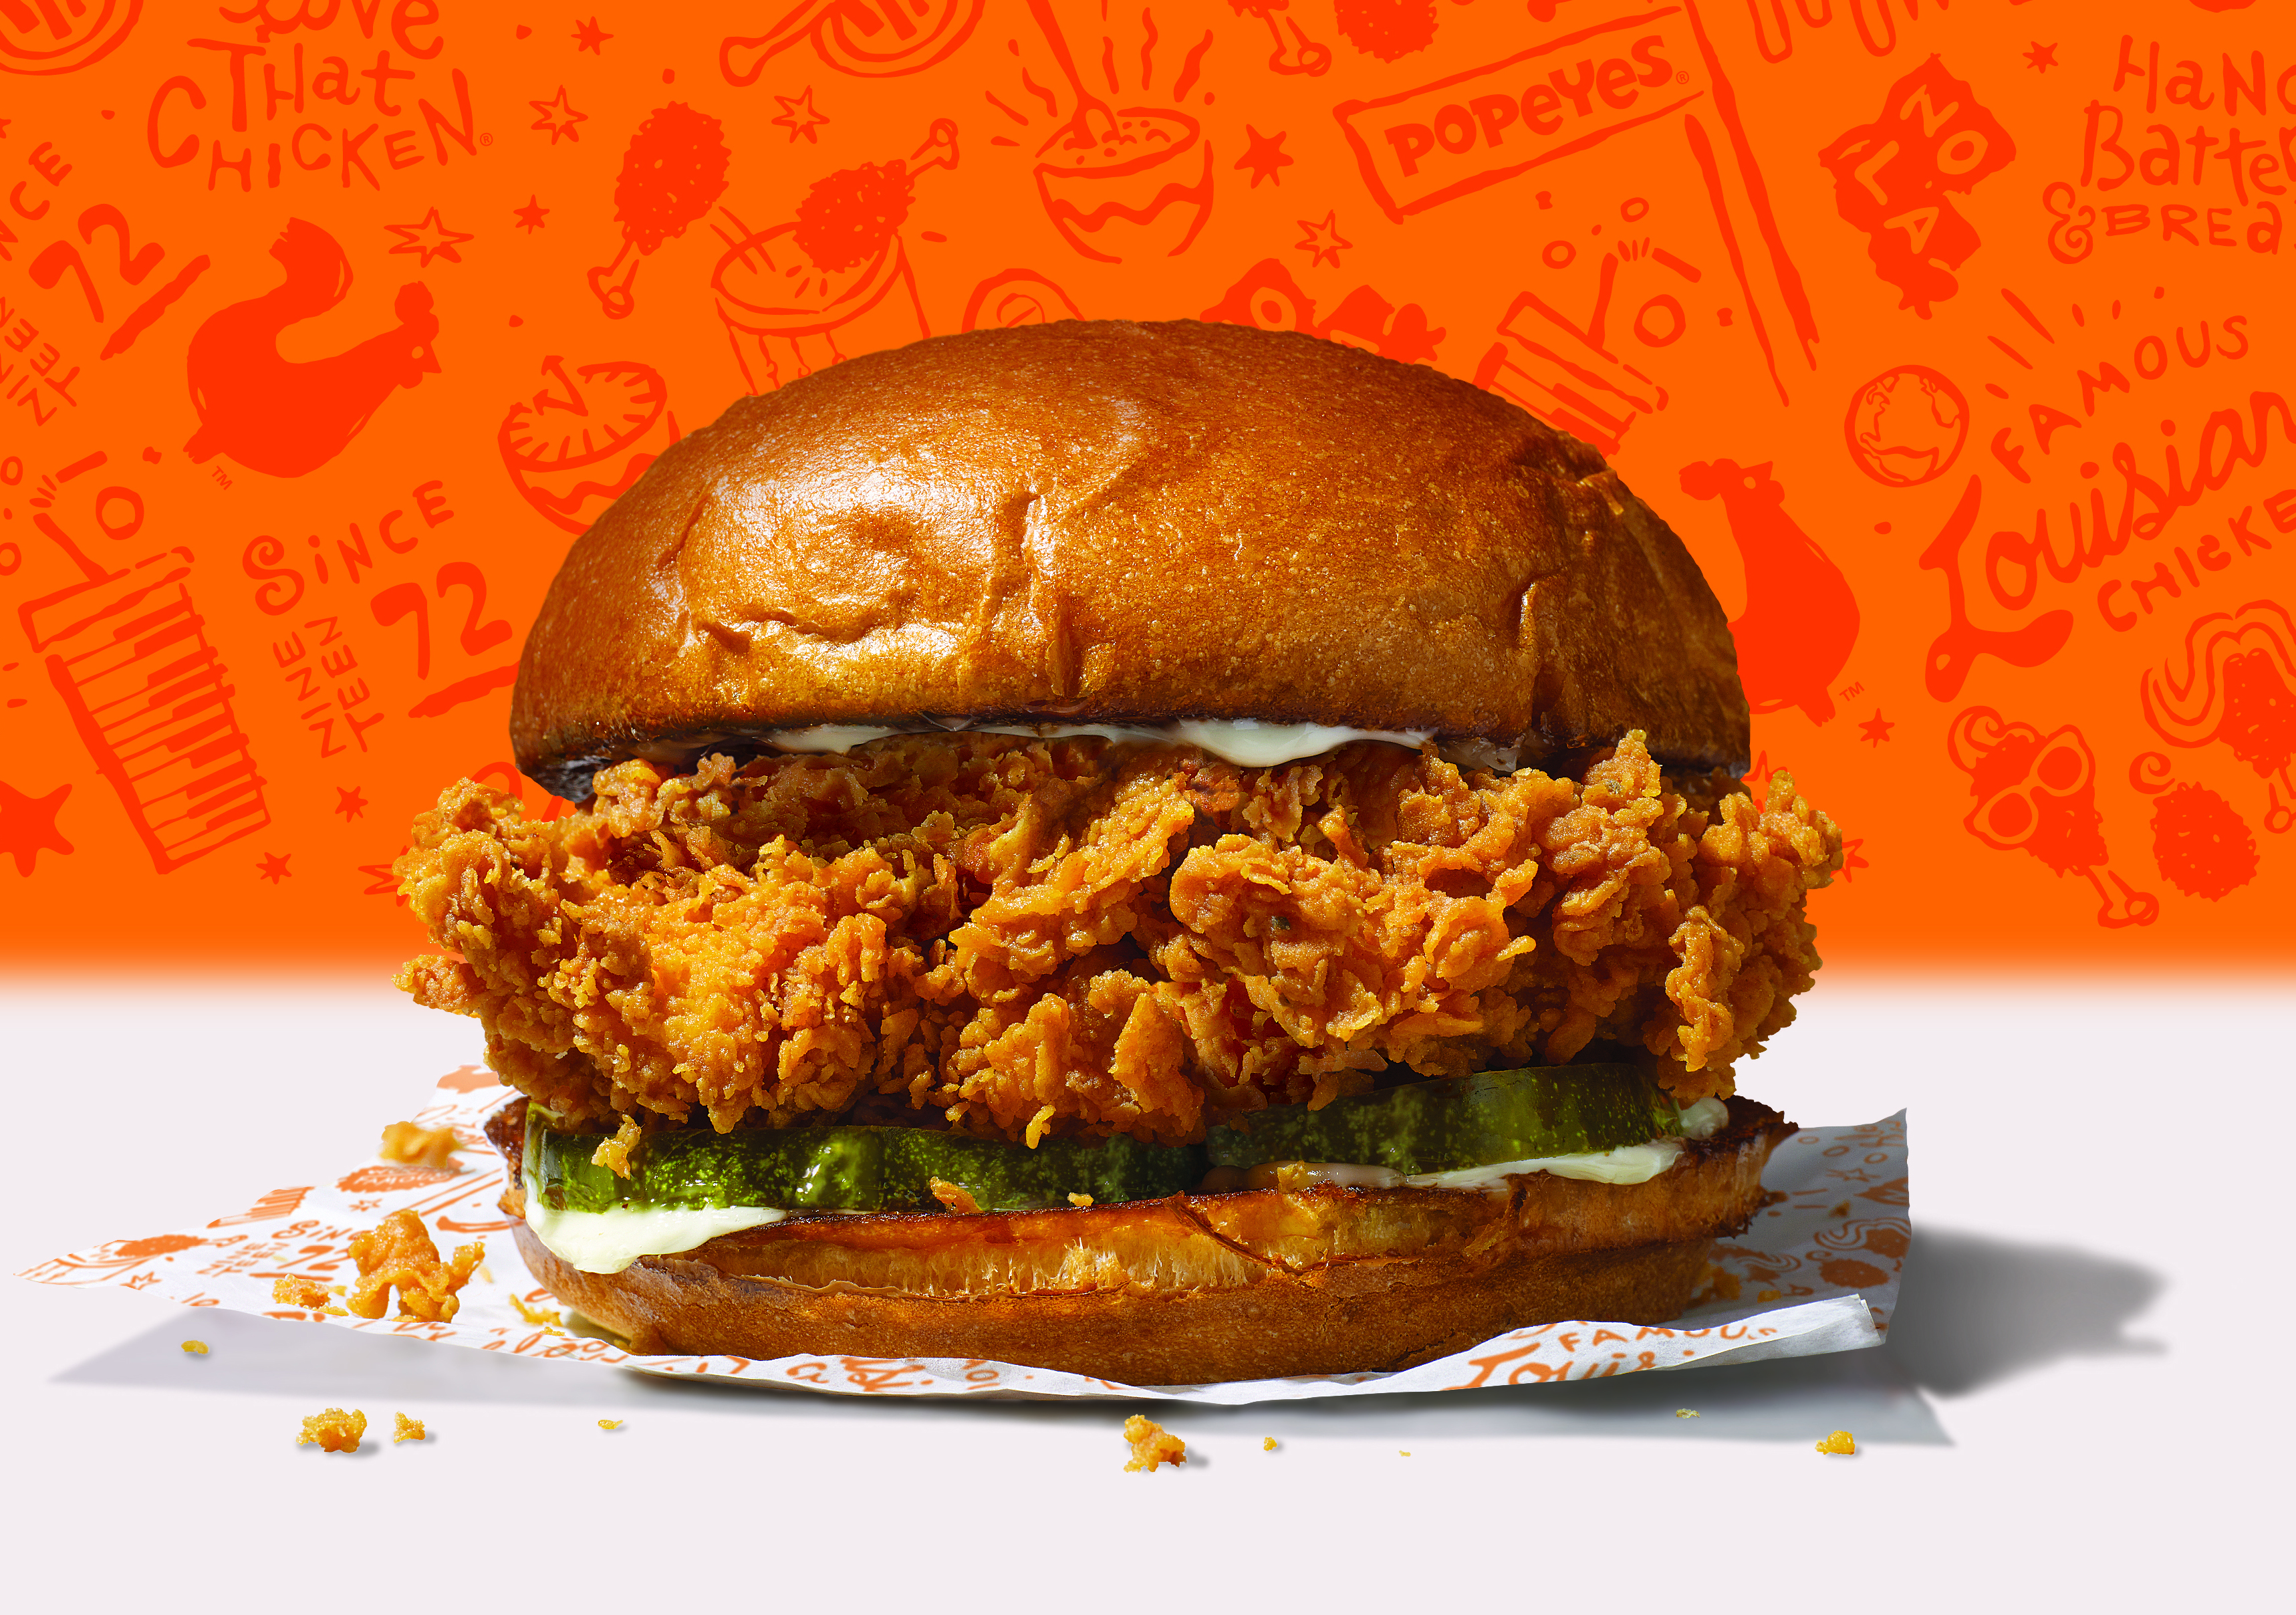 Westlake Legal Group Popeyes-Chicken-Sandwich Popeyes' chicken sandwich is surprise hit: 'We didn't expect this type of reaction' Michael Hollan fox-news/food-drink/food/fast-food fox news fnc/food-drink fnc article a1212fbd-b84a-59db-9ac6-59a88650075d